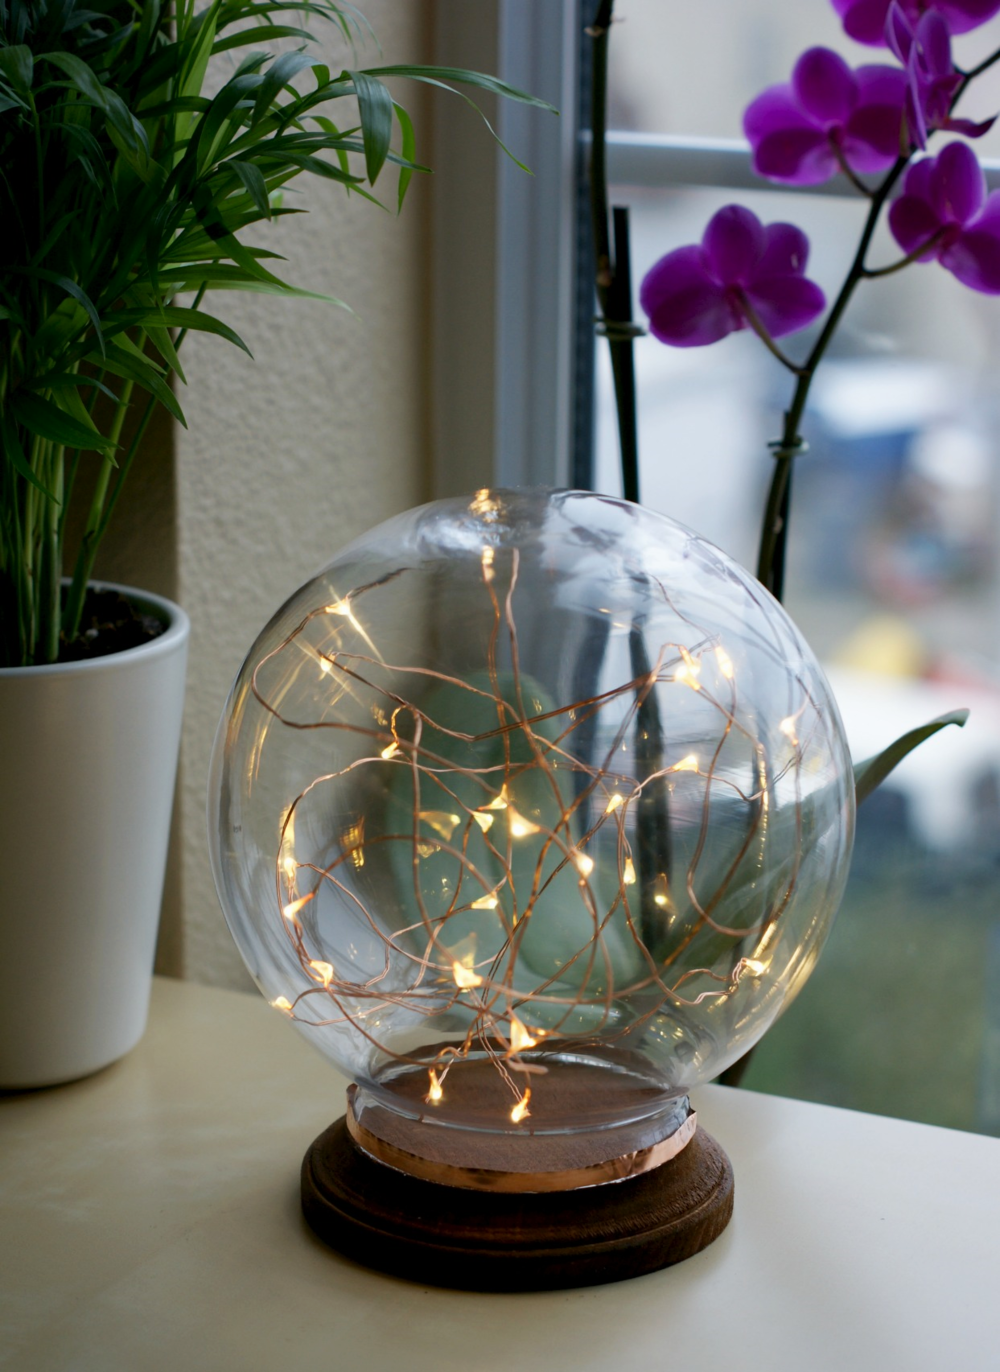 Mid Century Modern Inspired Illuminated Copper Globe \u2014 A Charming ...